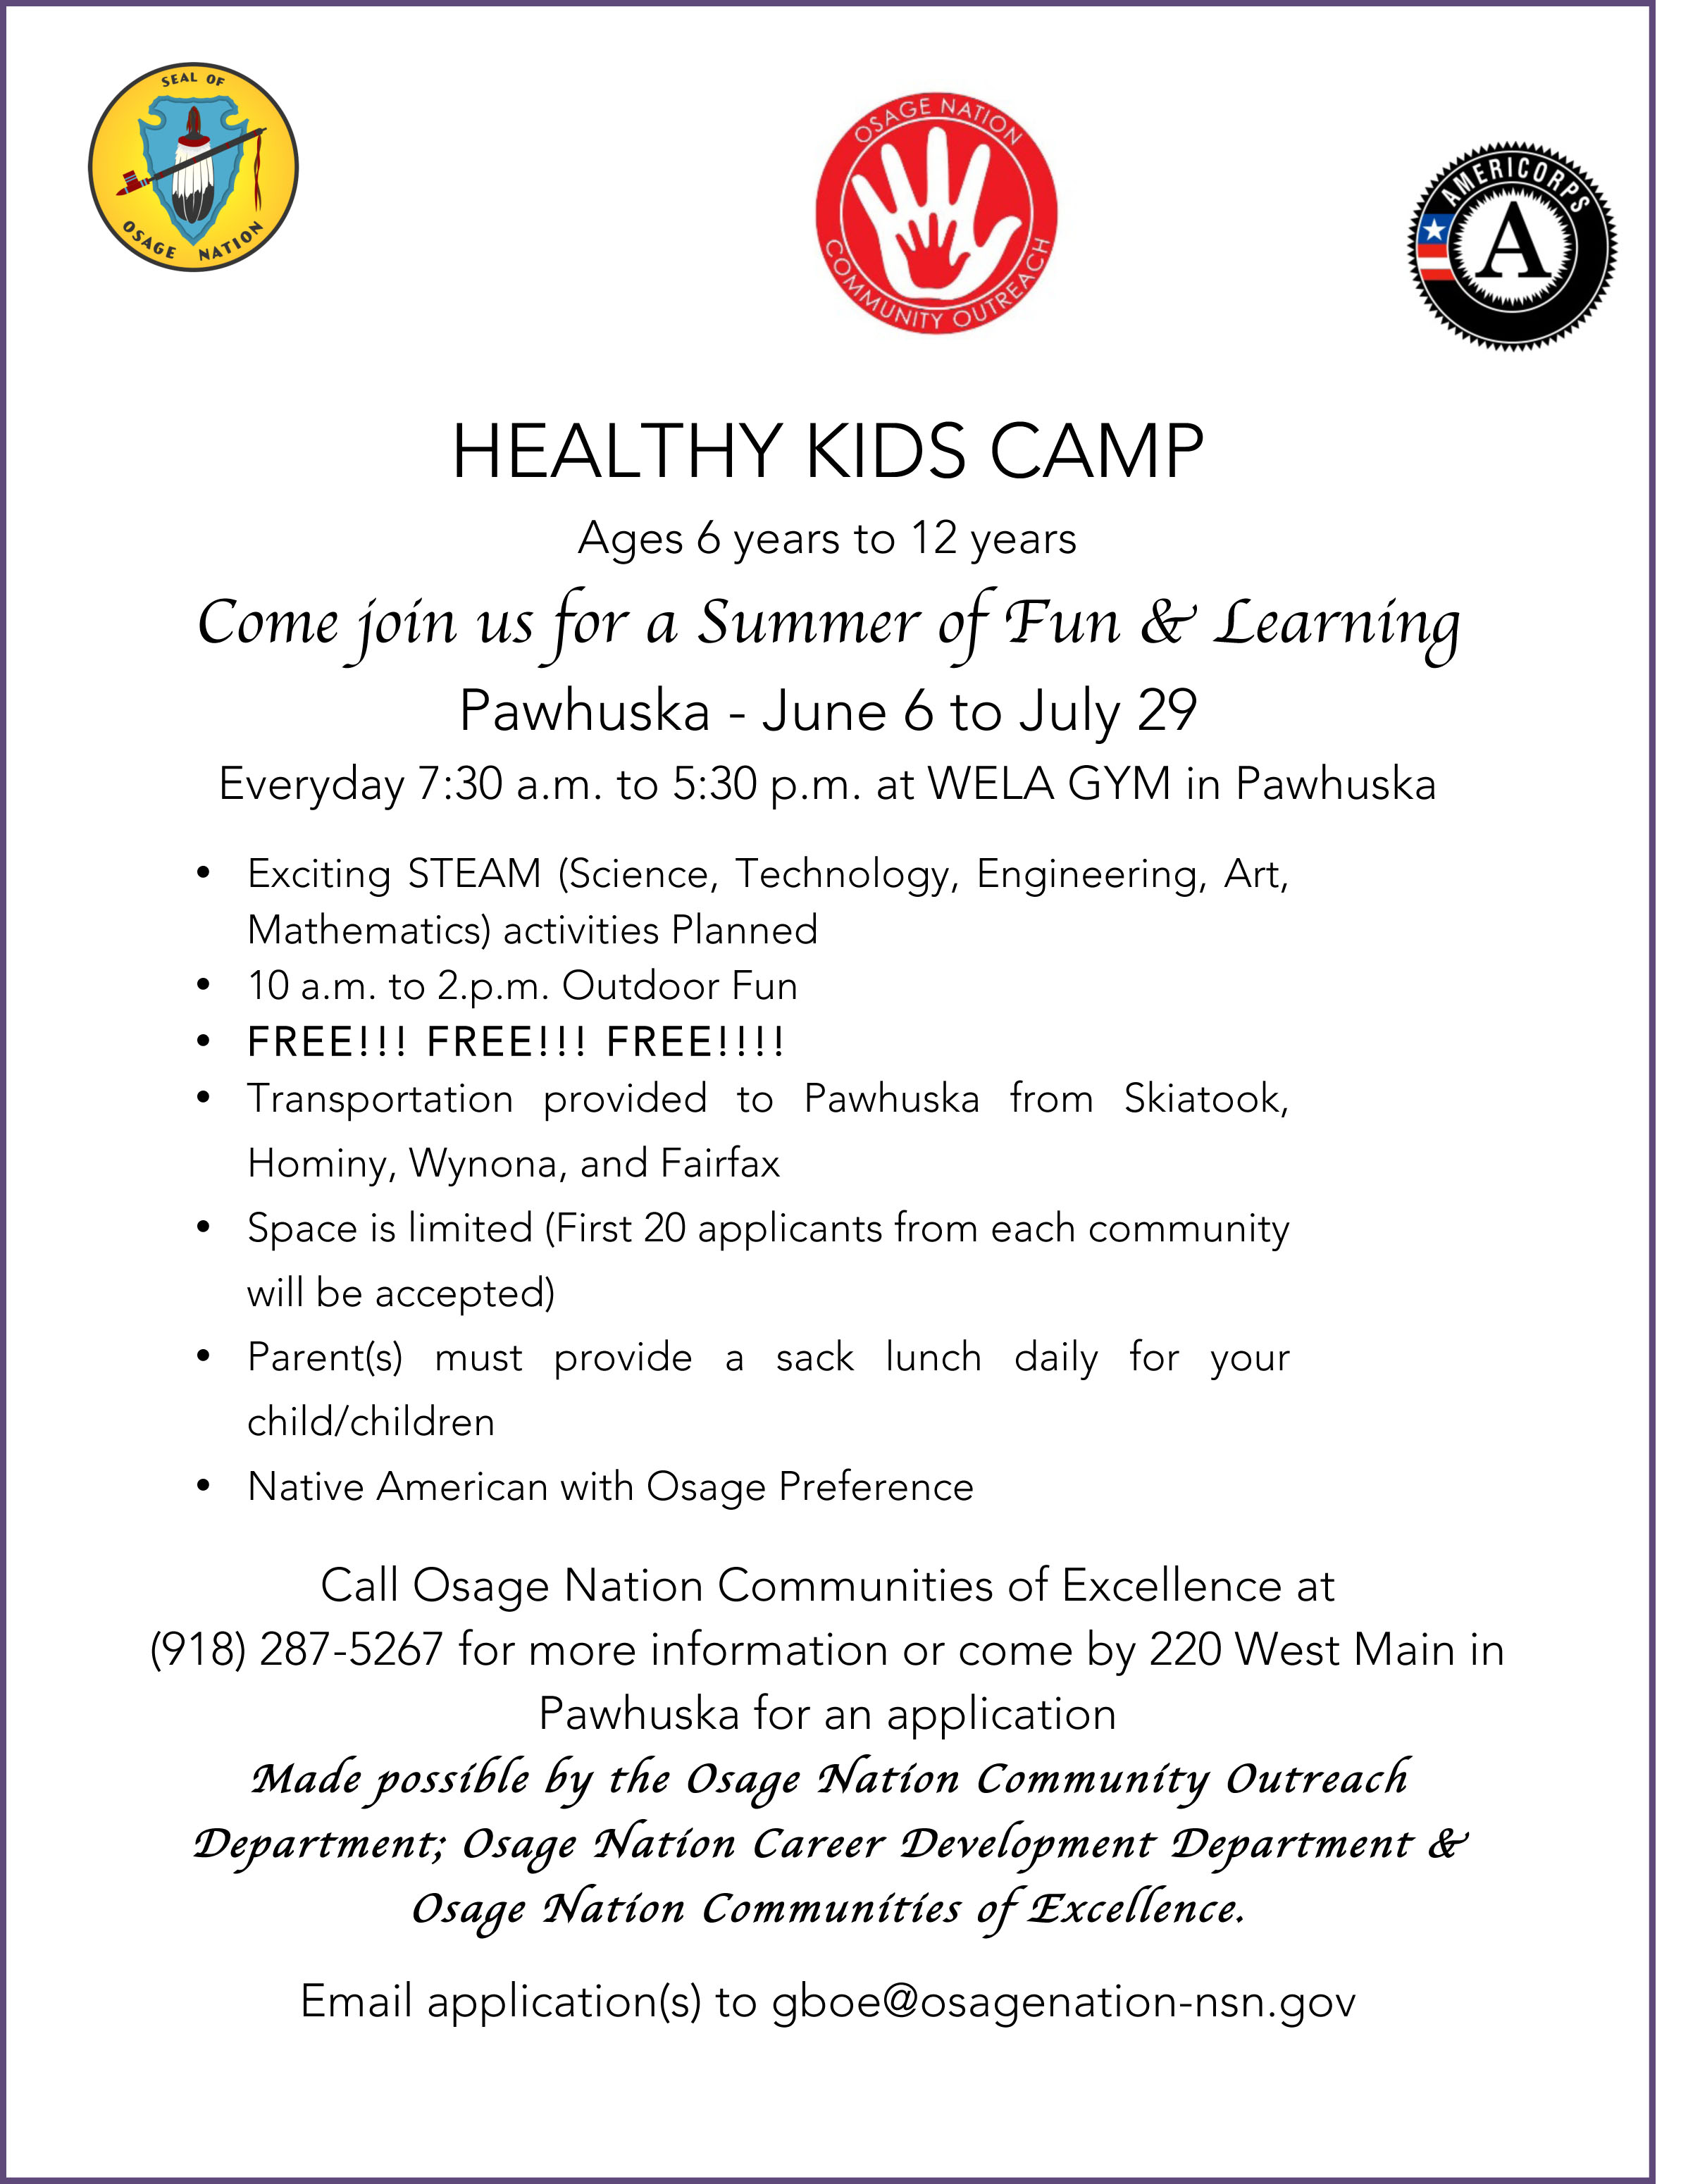 Communities of Excellence to host free Healthy Kids Camp June 6 to July 29